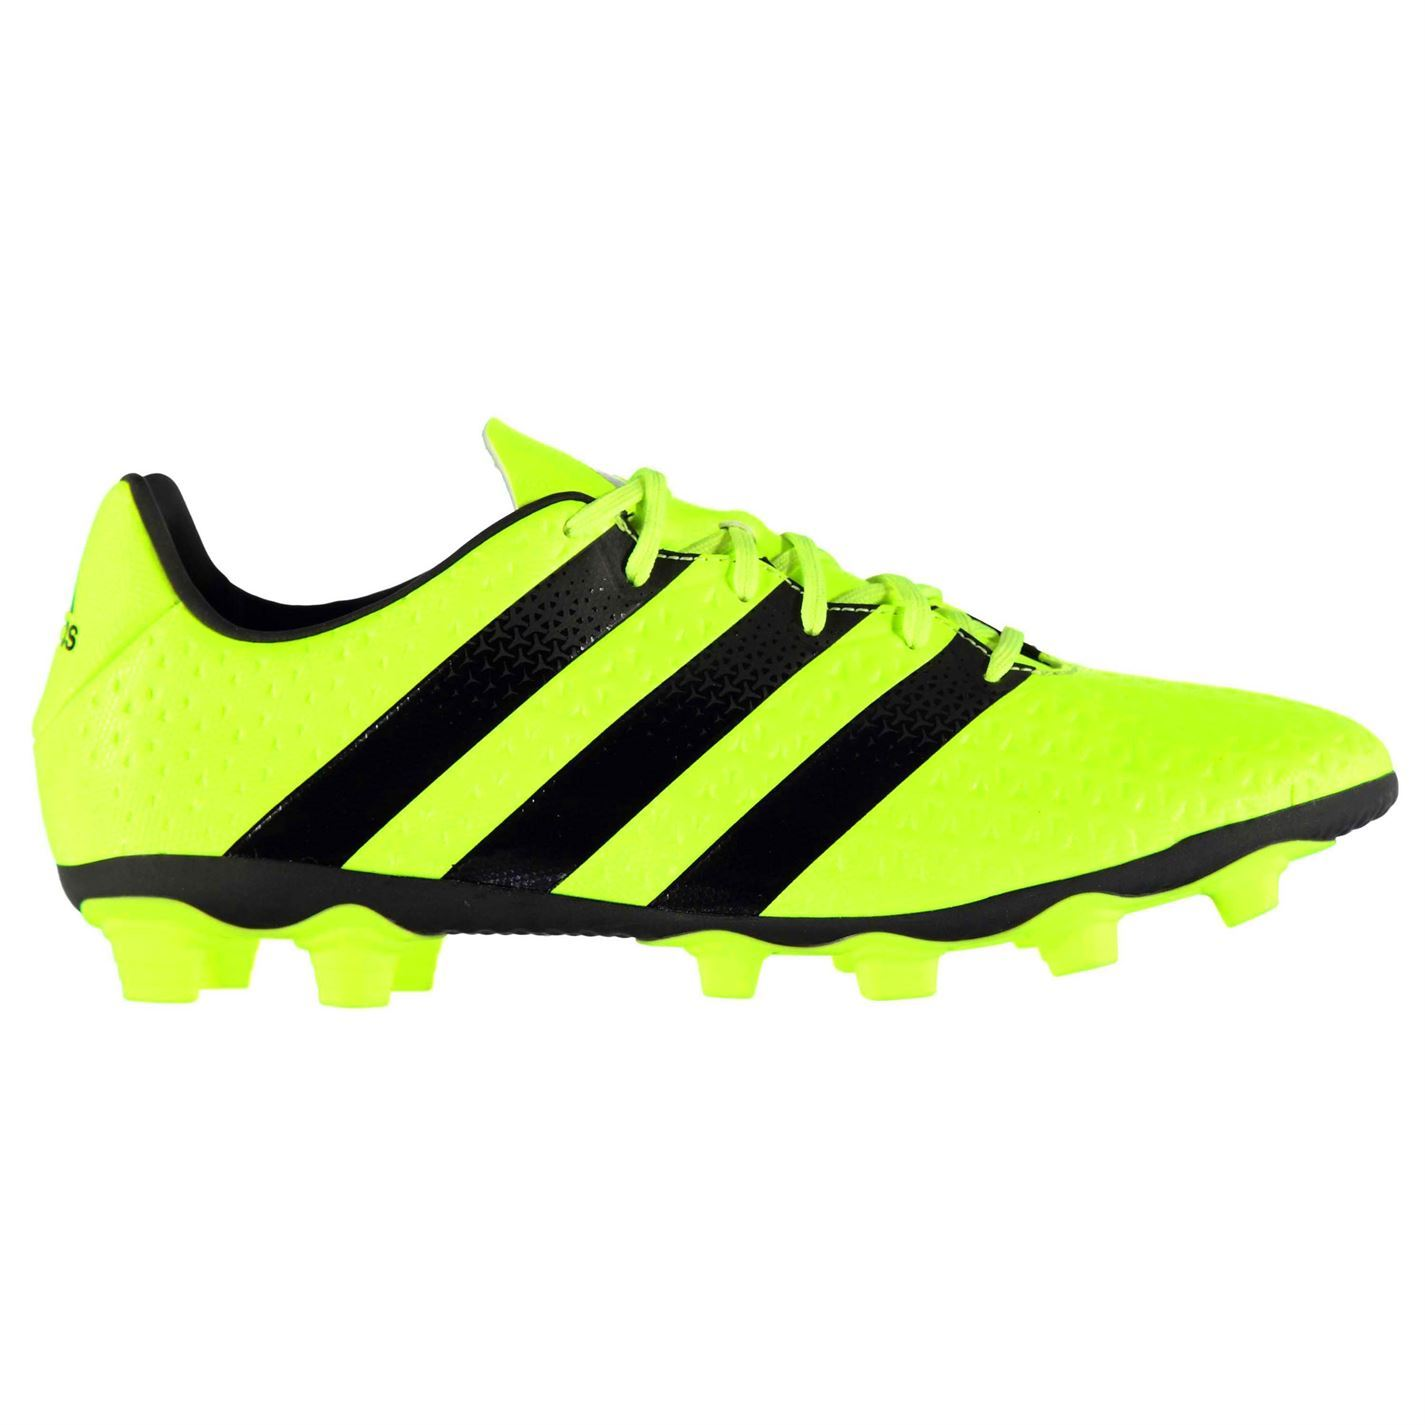 fb4a9b349e3 ... adidas Ace 16.4 FG Firm Ground Football Boots Mens Yellow Soccer Cleats  Shoes ...